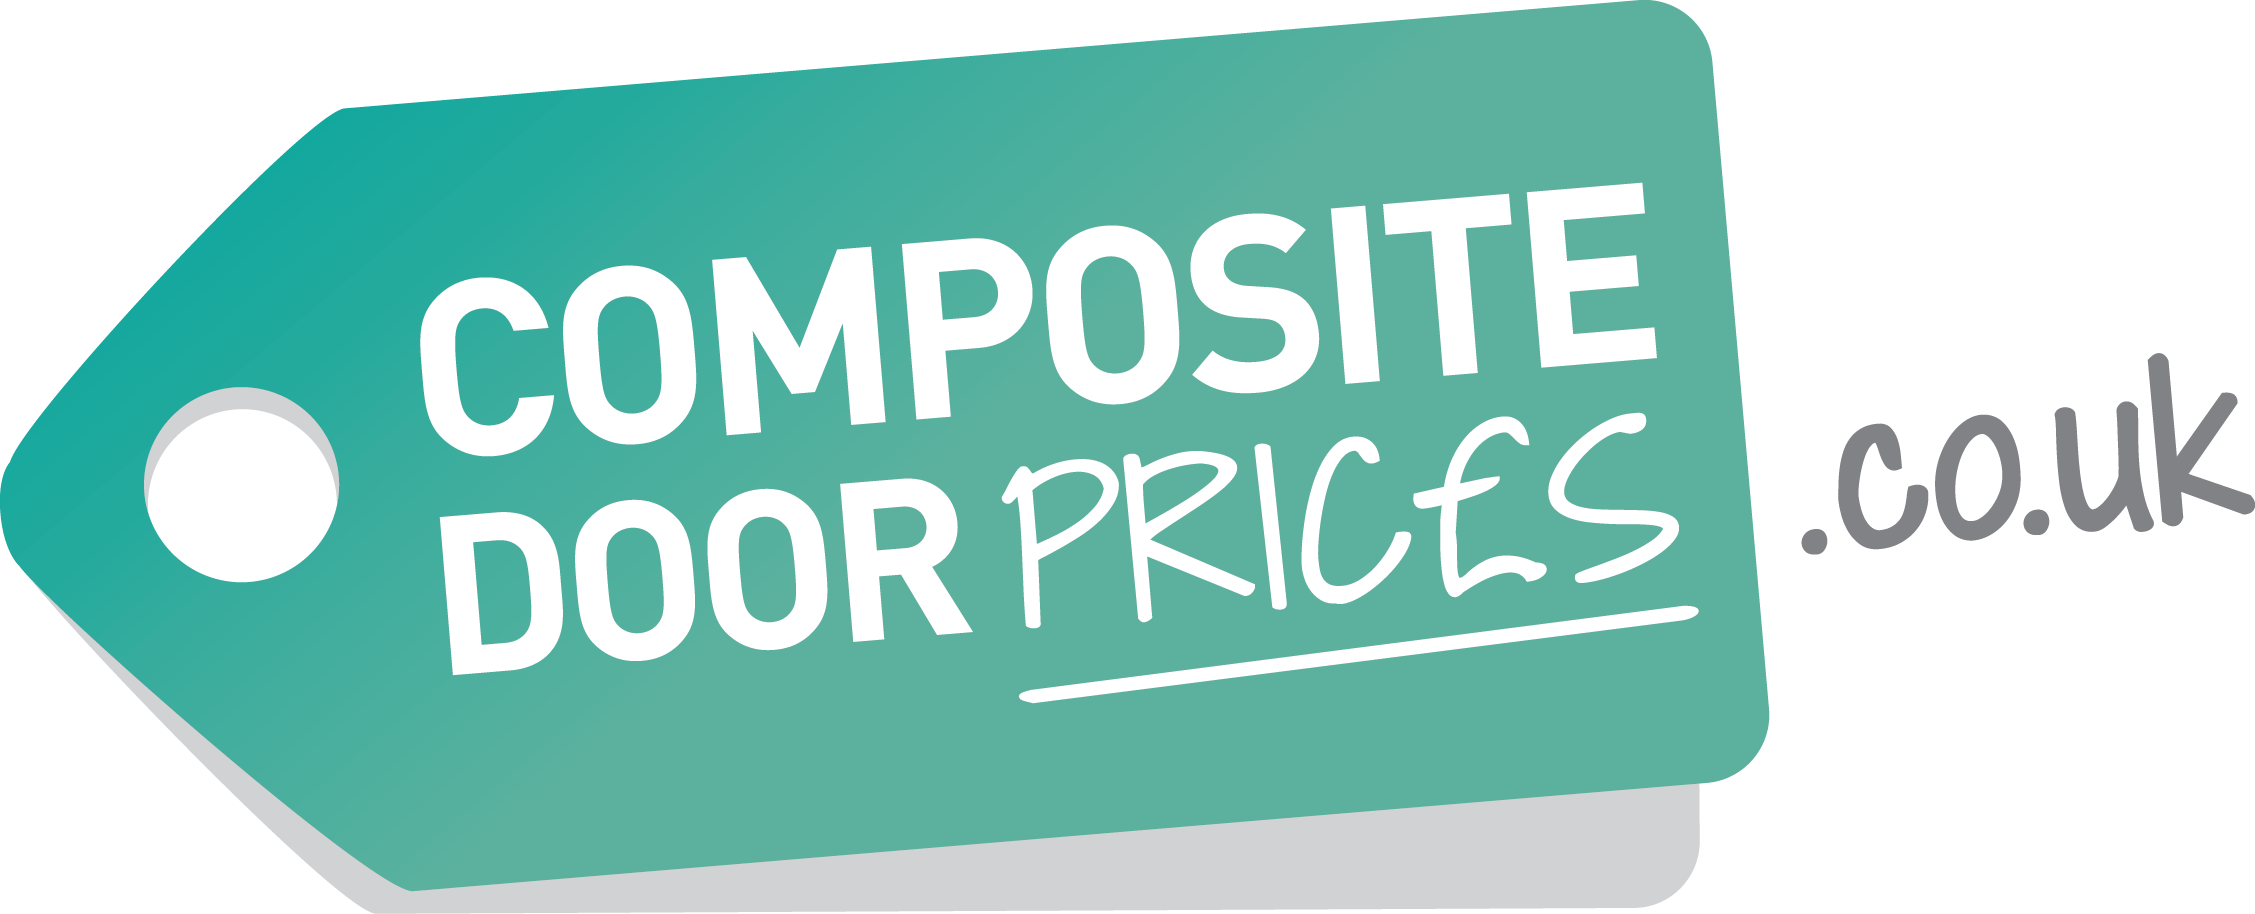 Should you always believe what you read | Composite Door Prices